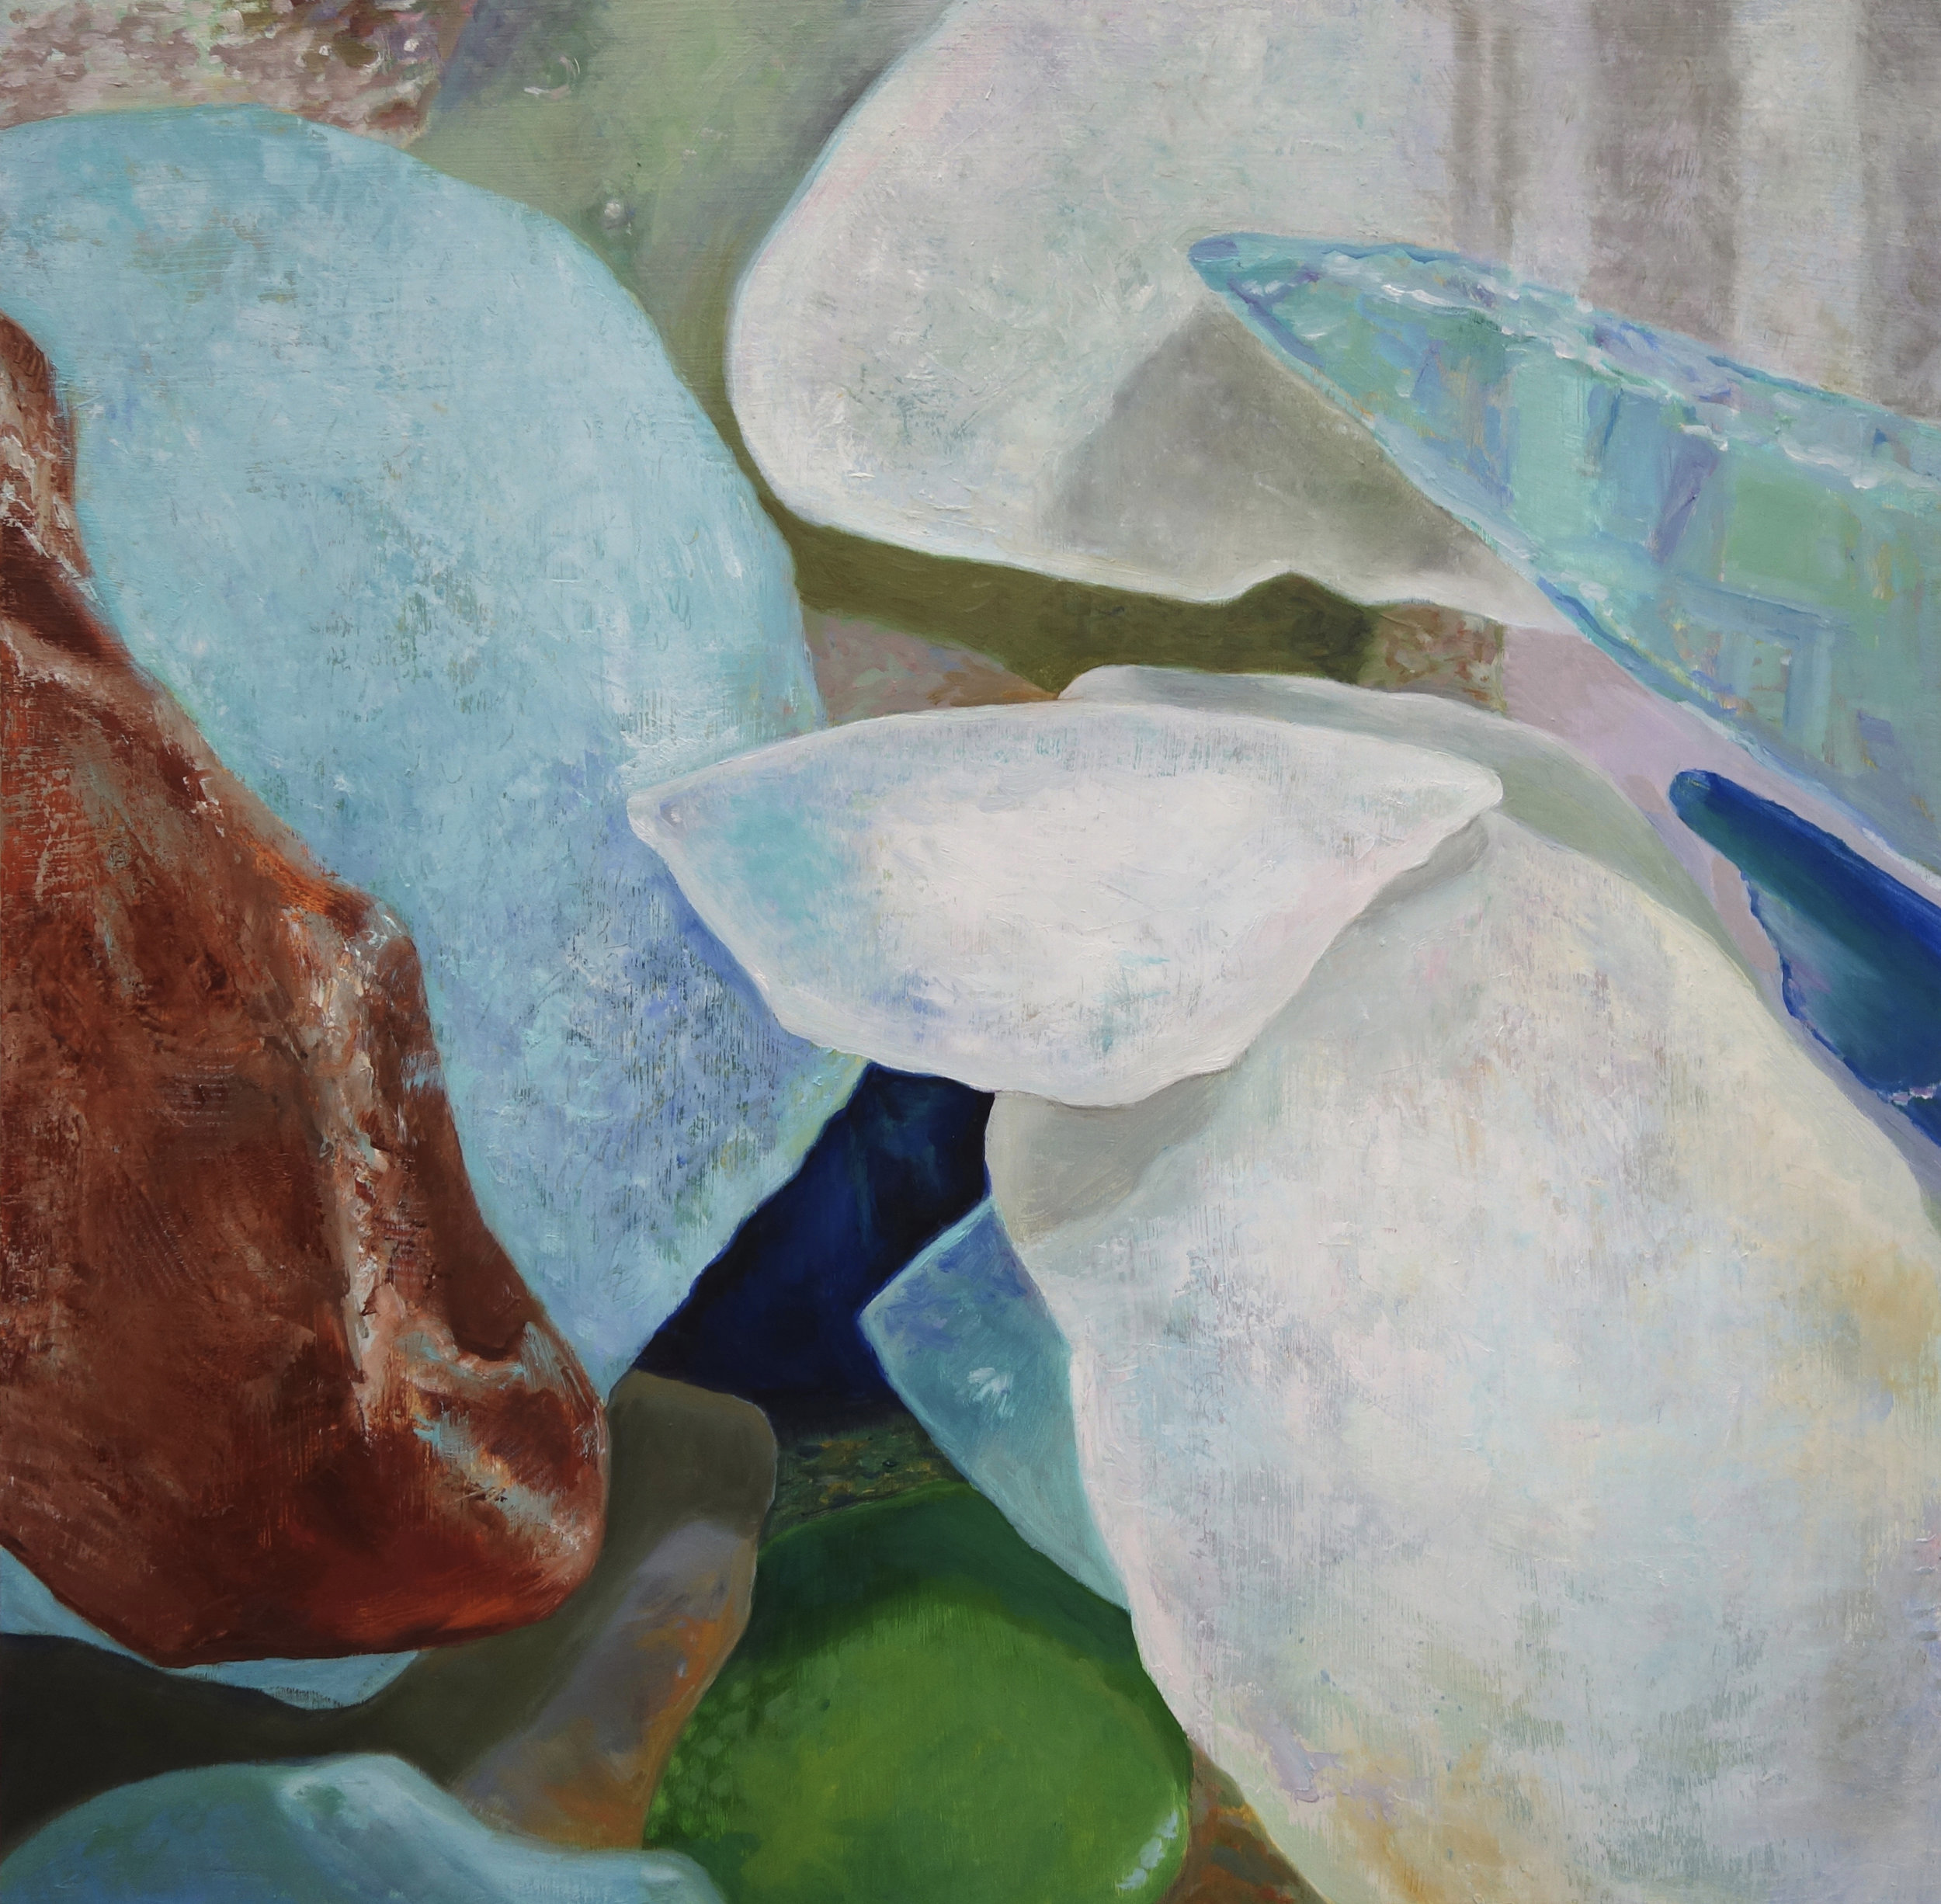 "Seaglass No. 10, 2013, 16x16"", Oil on Wood"